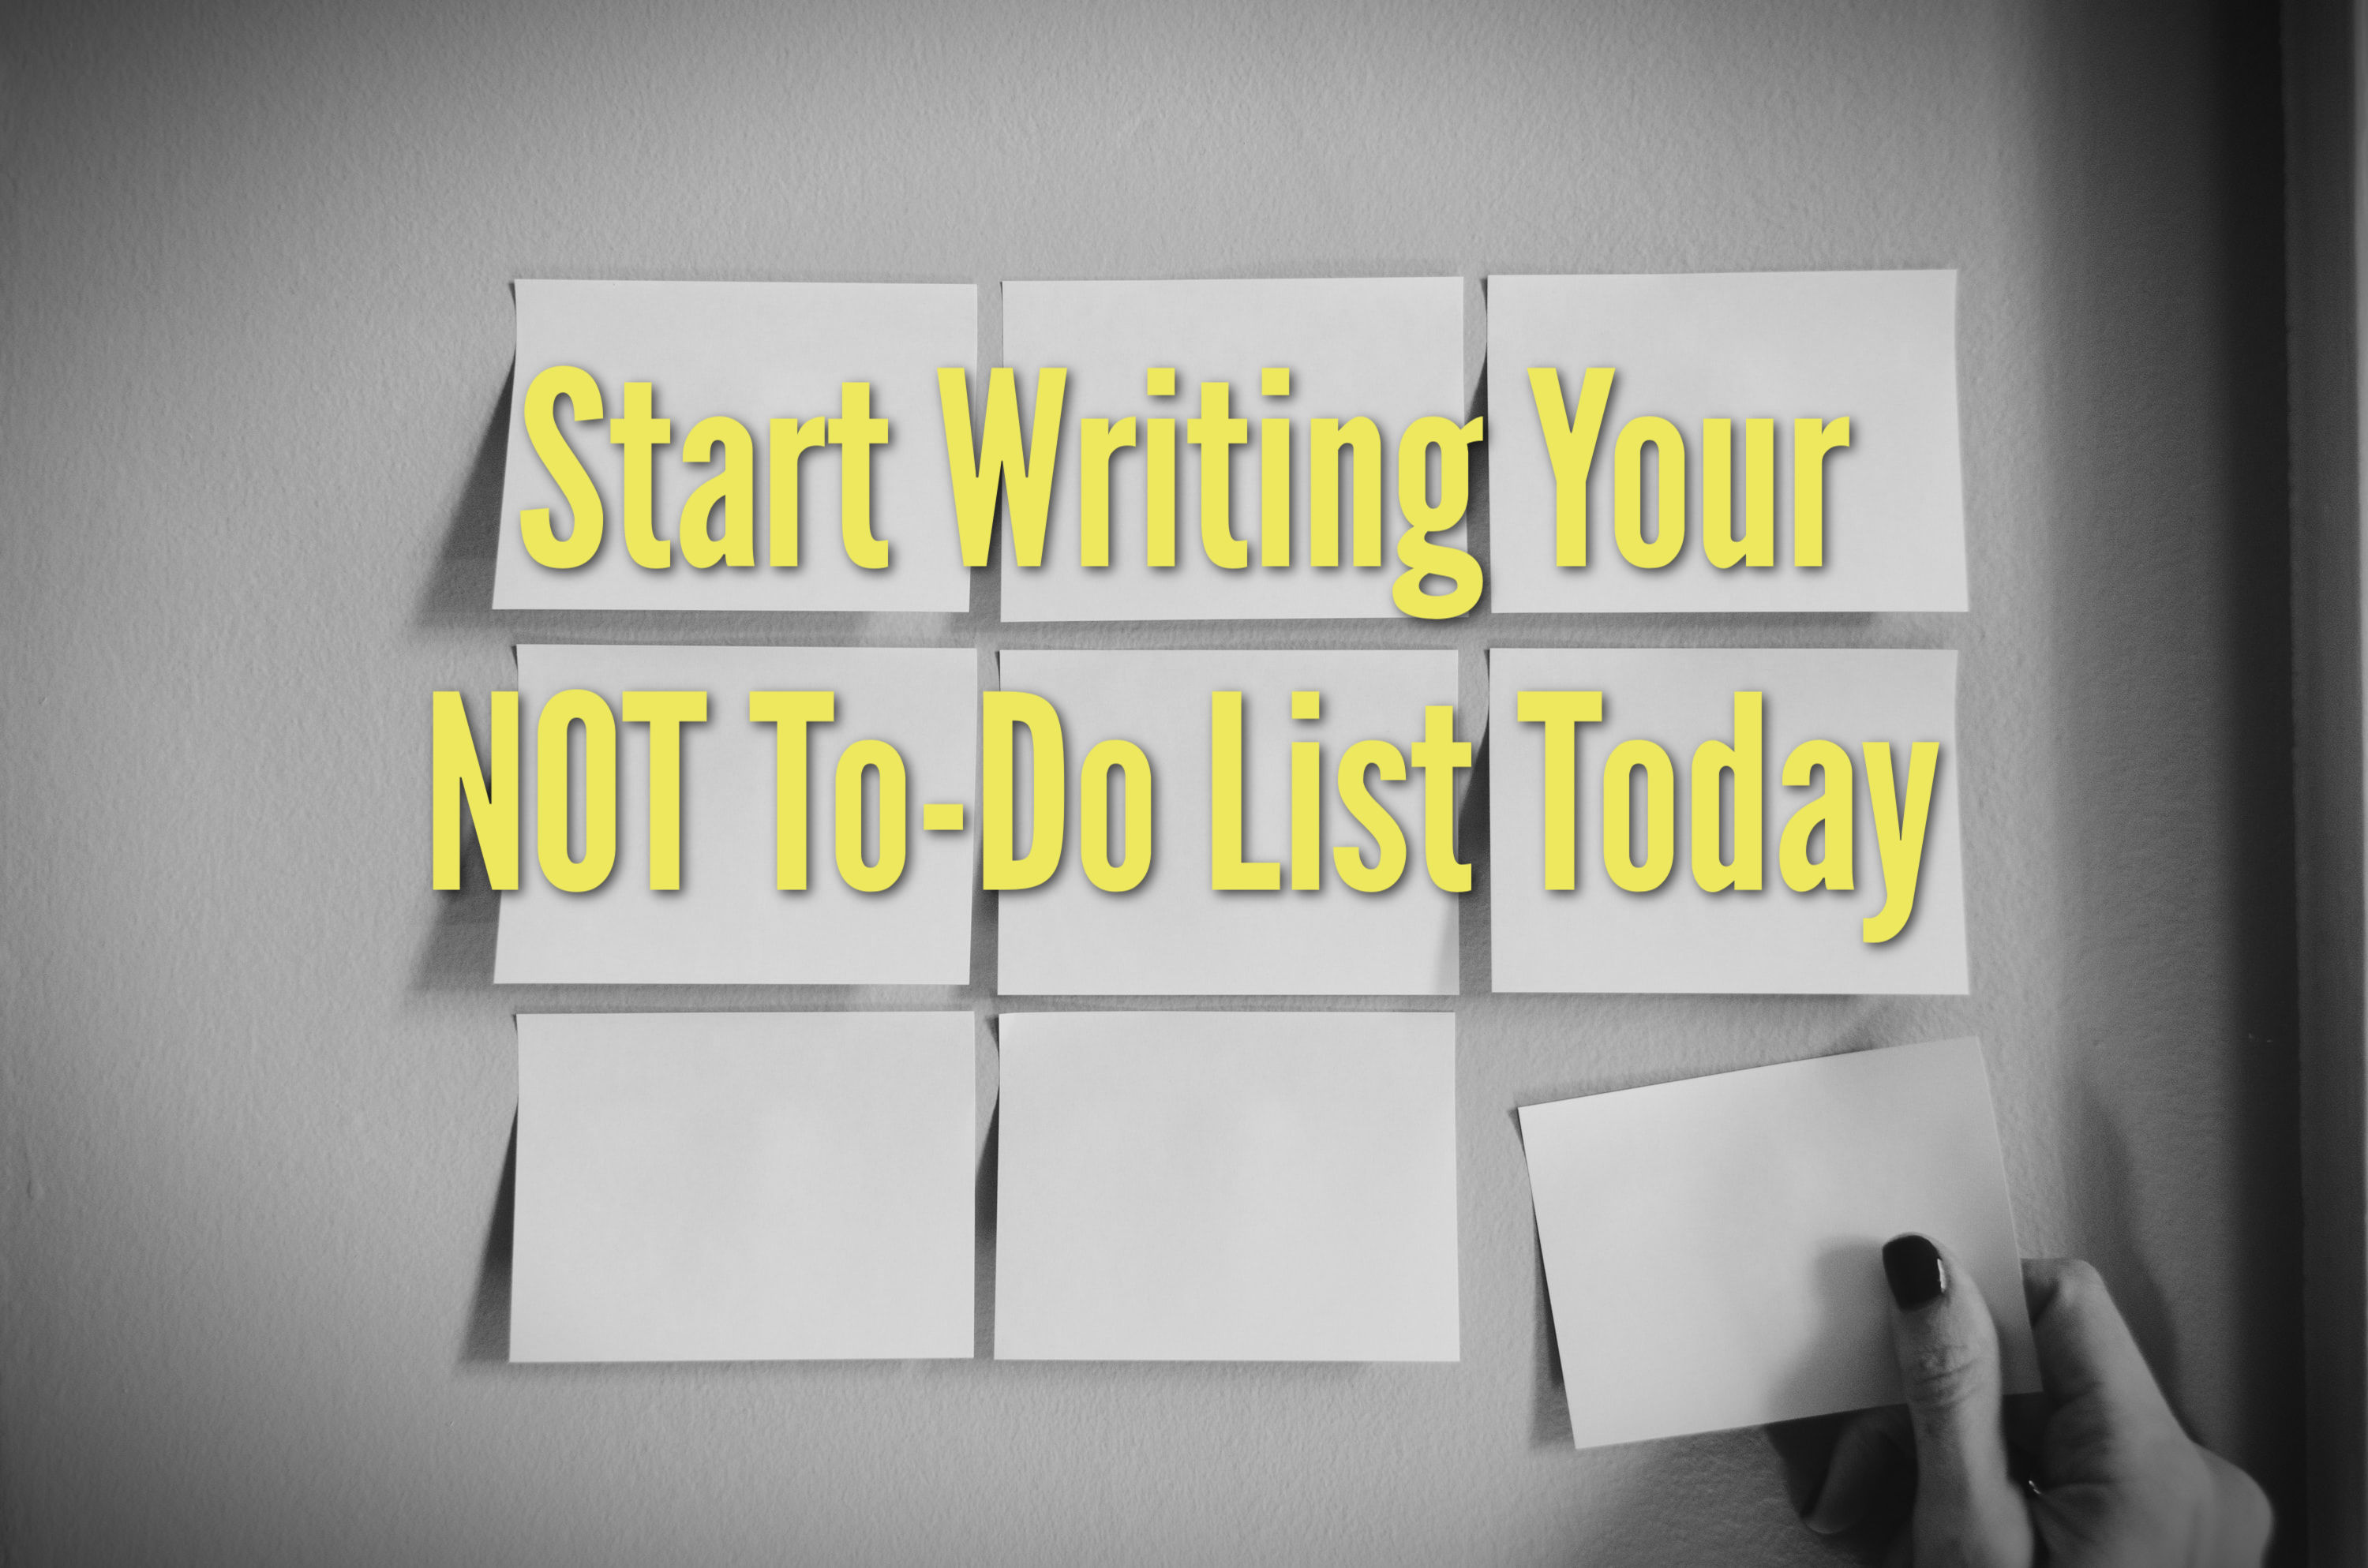 Start Writing Your NOT To-Do List Today